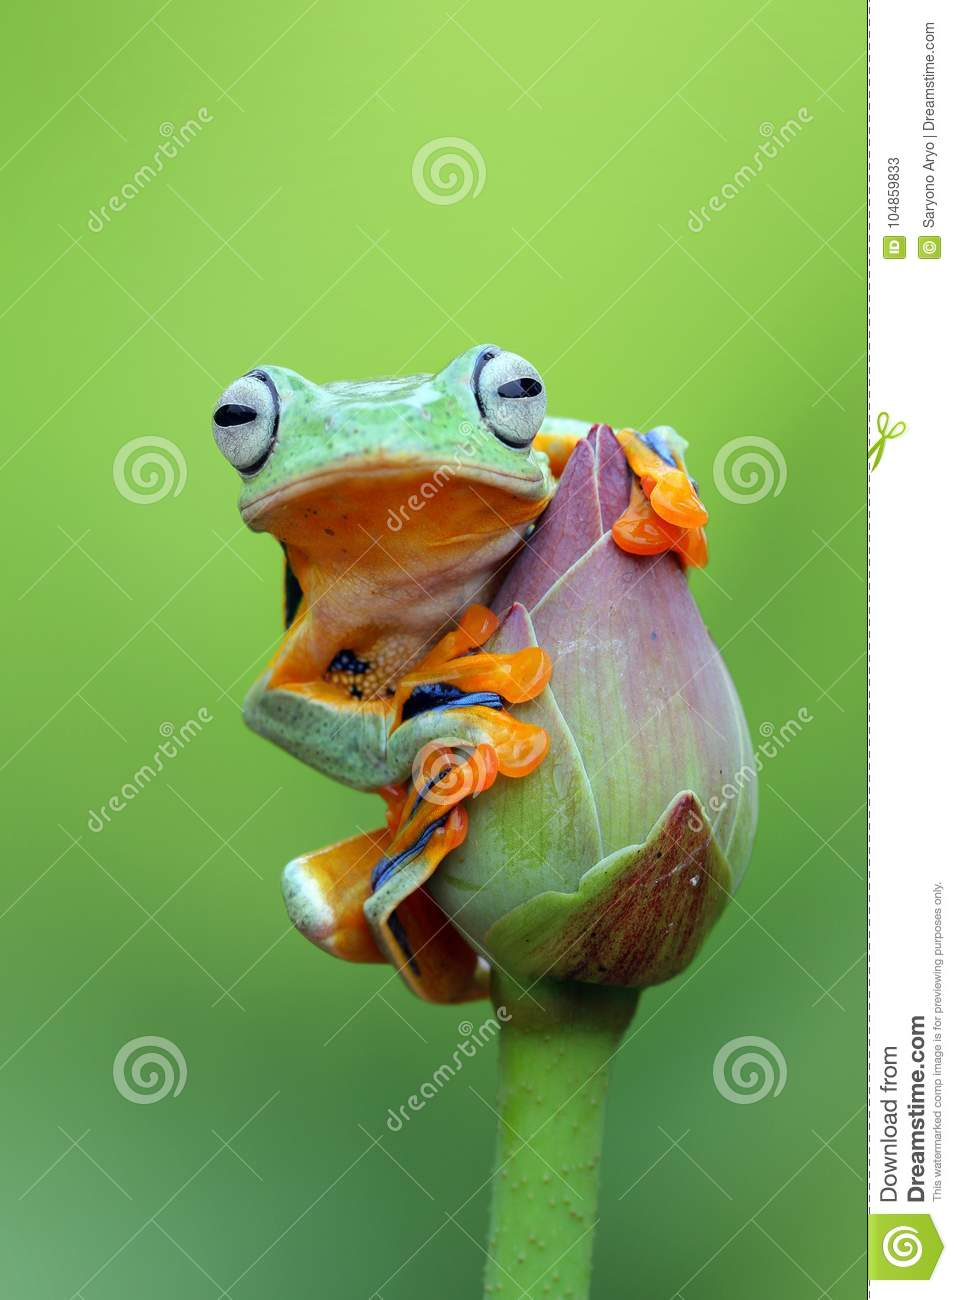 Tree frog, Flying frog on the lotus bud